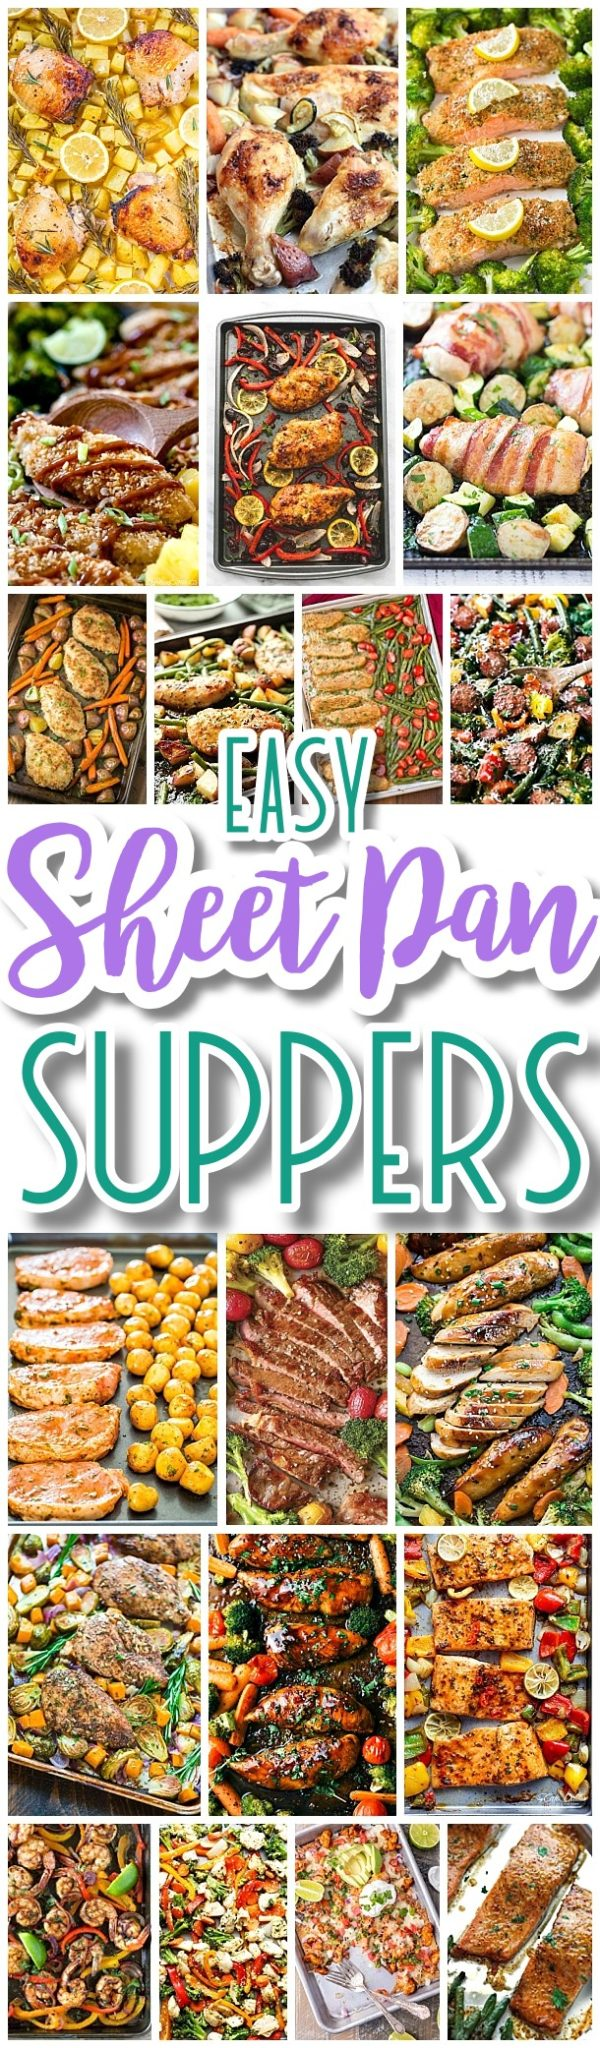 The BEST Sheet Pan Suppers Recipes - Easy and Quick Family Lunch and Simple Dinner Meal Ideas using ONE baking PAN - Dreaming in DIY #sheetpansuppers #sheetpanrecipes #sheetpandinners #onepanmeals #healthyrecipes #mealprep #easyrecipes #healthydinners #healthysuppers #healthylunches #simplefamilymeals #simplefamilyrecipes #simplerecipes